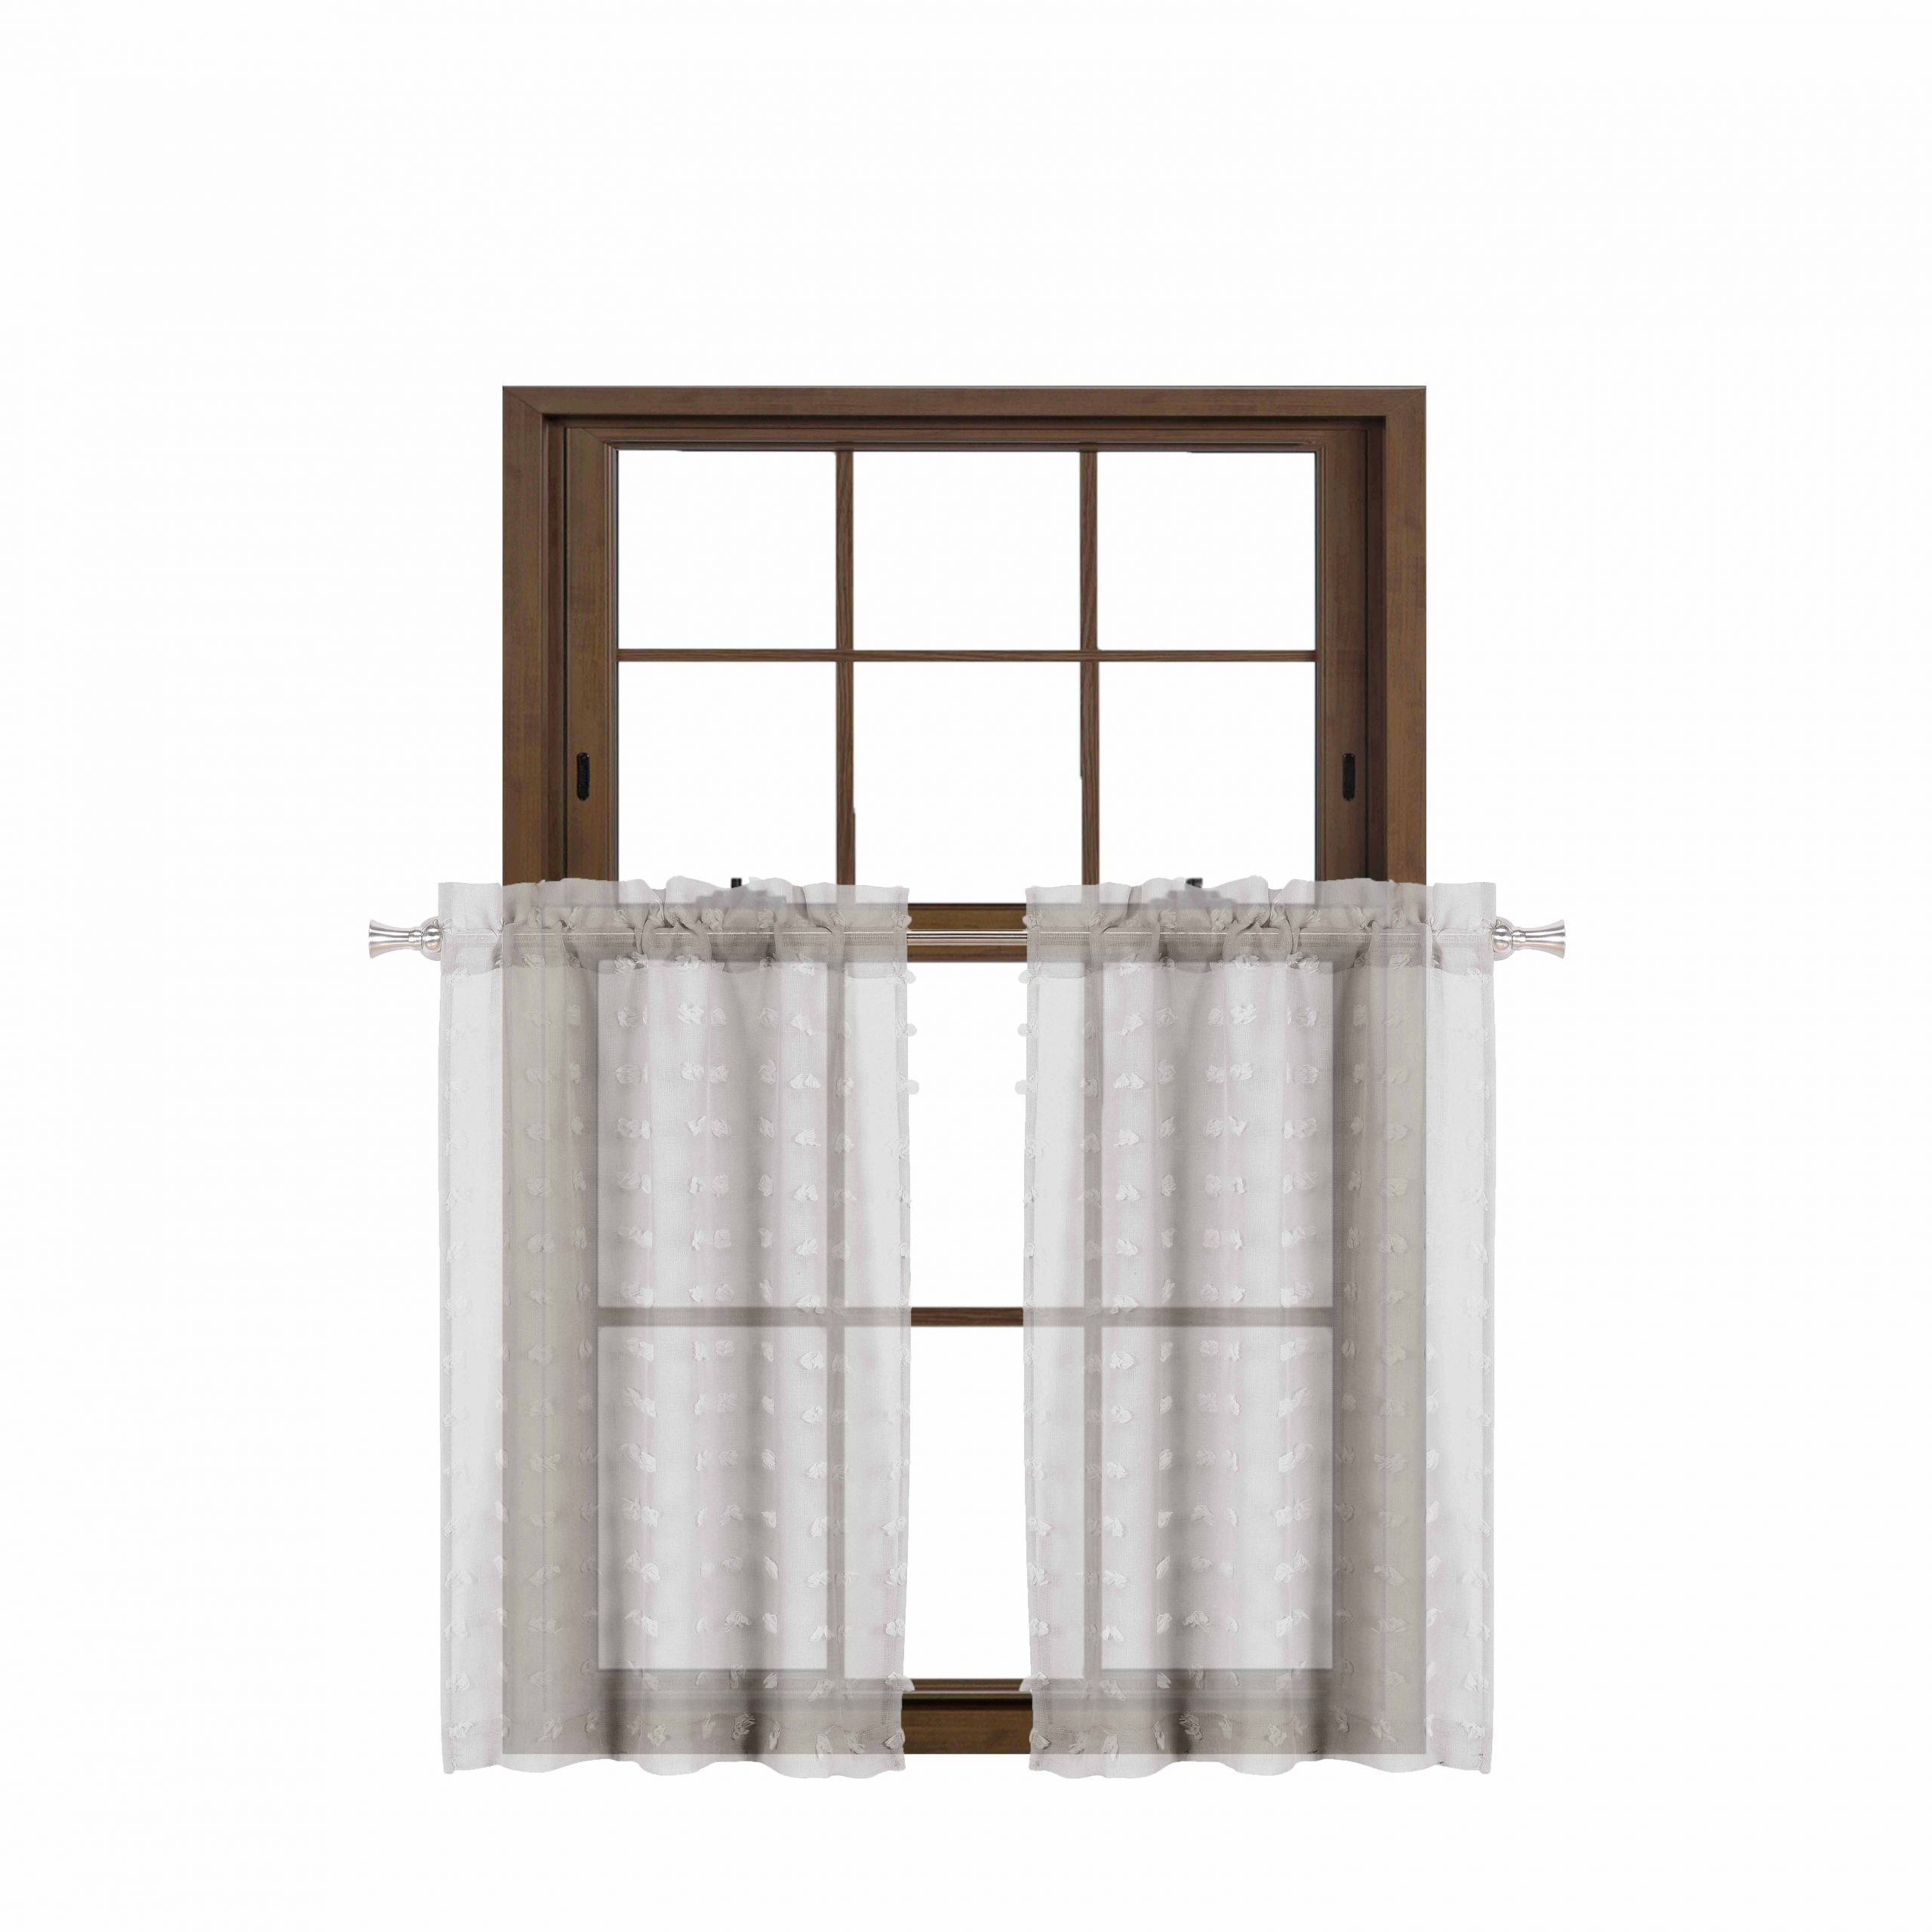 Sheer Lace Elongated Kitchen Curtain Tier Pairs Within Recent Sheer 2 Piece Silver Café/tier Curtain Set: 3 D Soft Tufts (View 17 of 20)